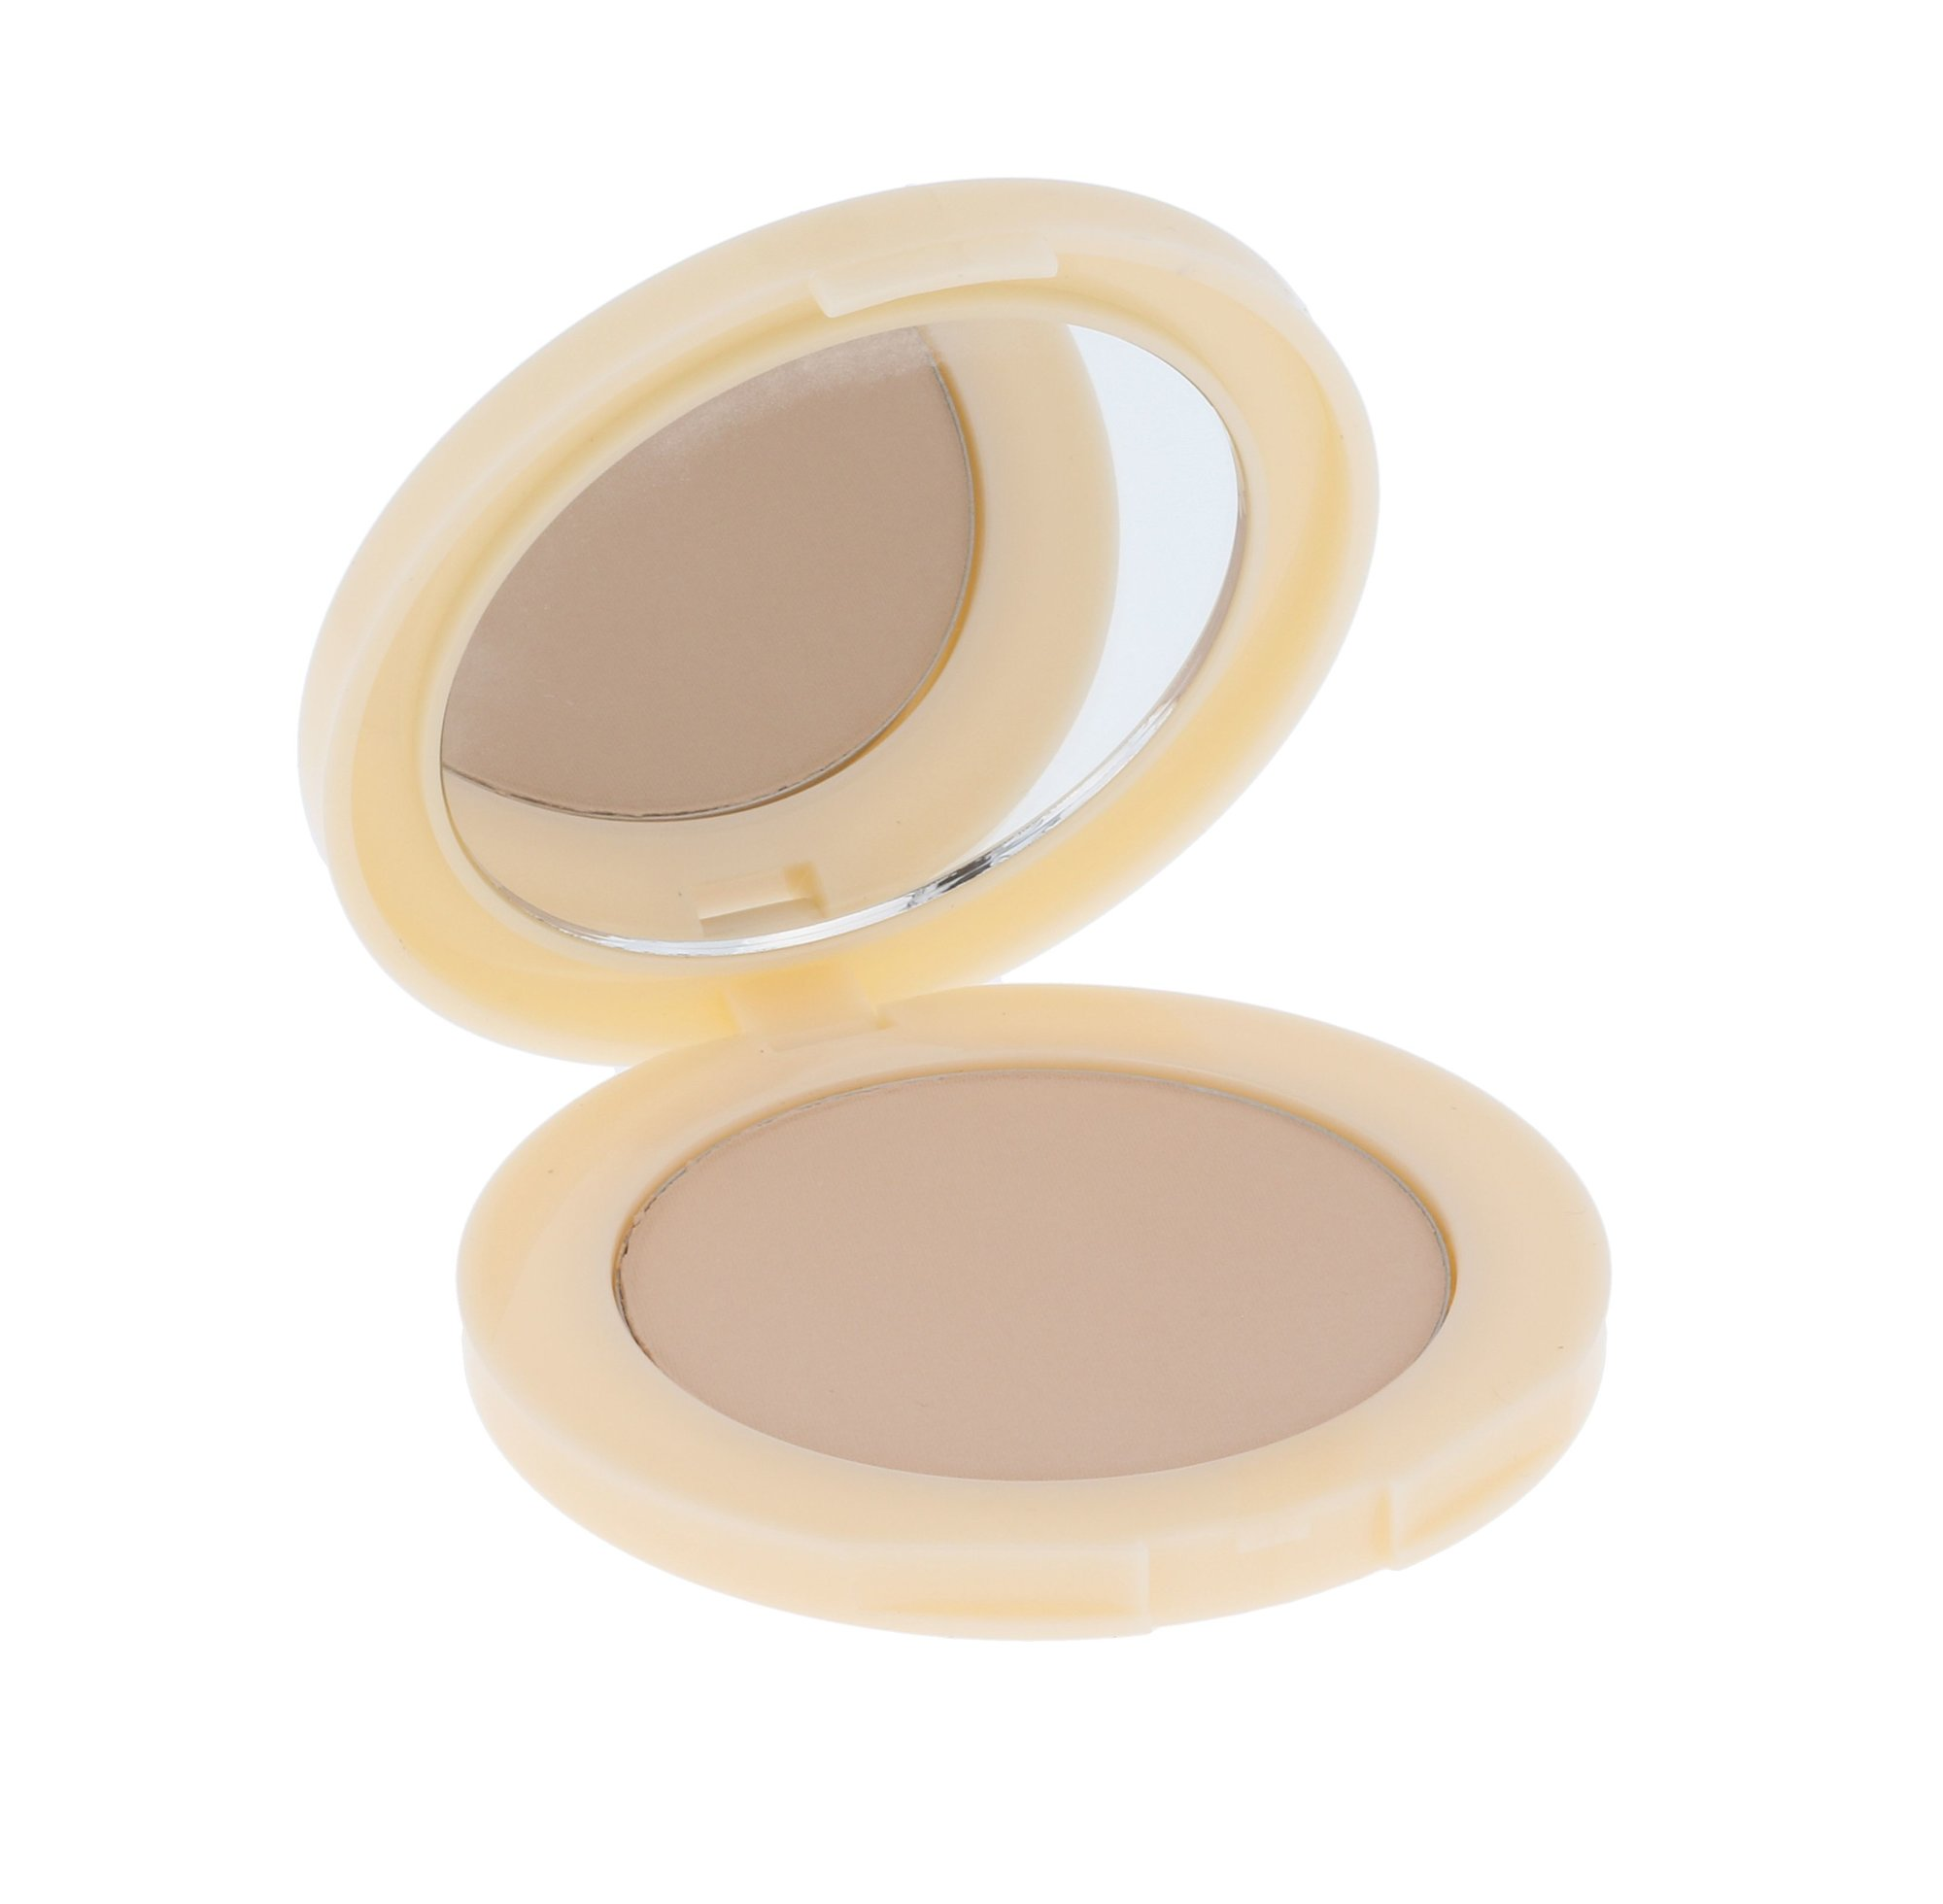 Maybelline Affinitone Cosmetic 9ml 24 Golden Beige